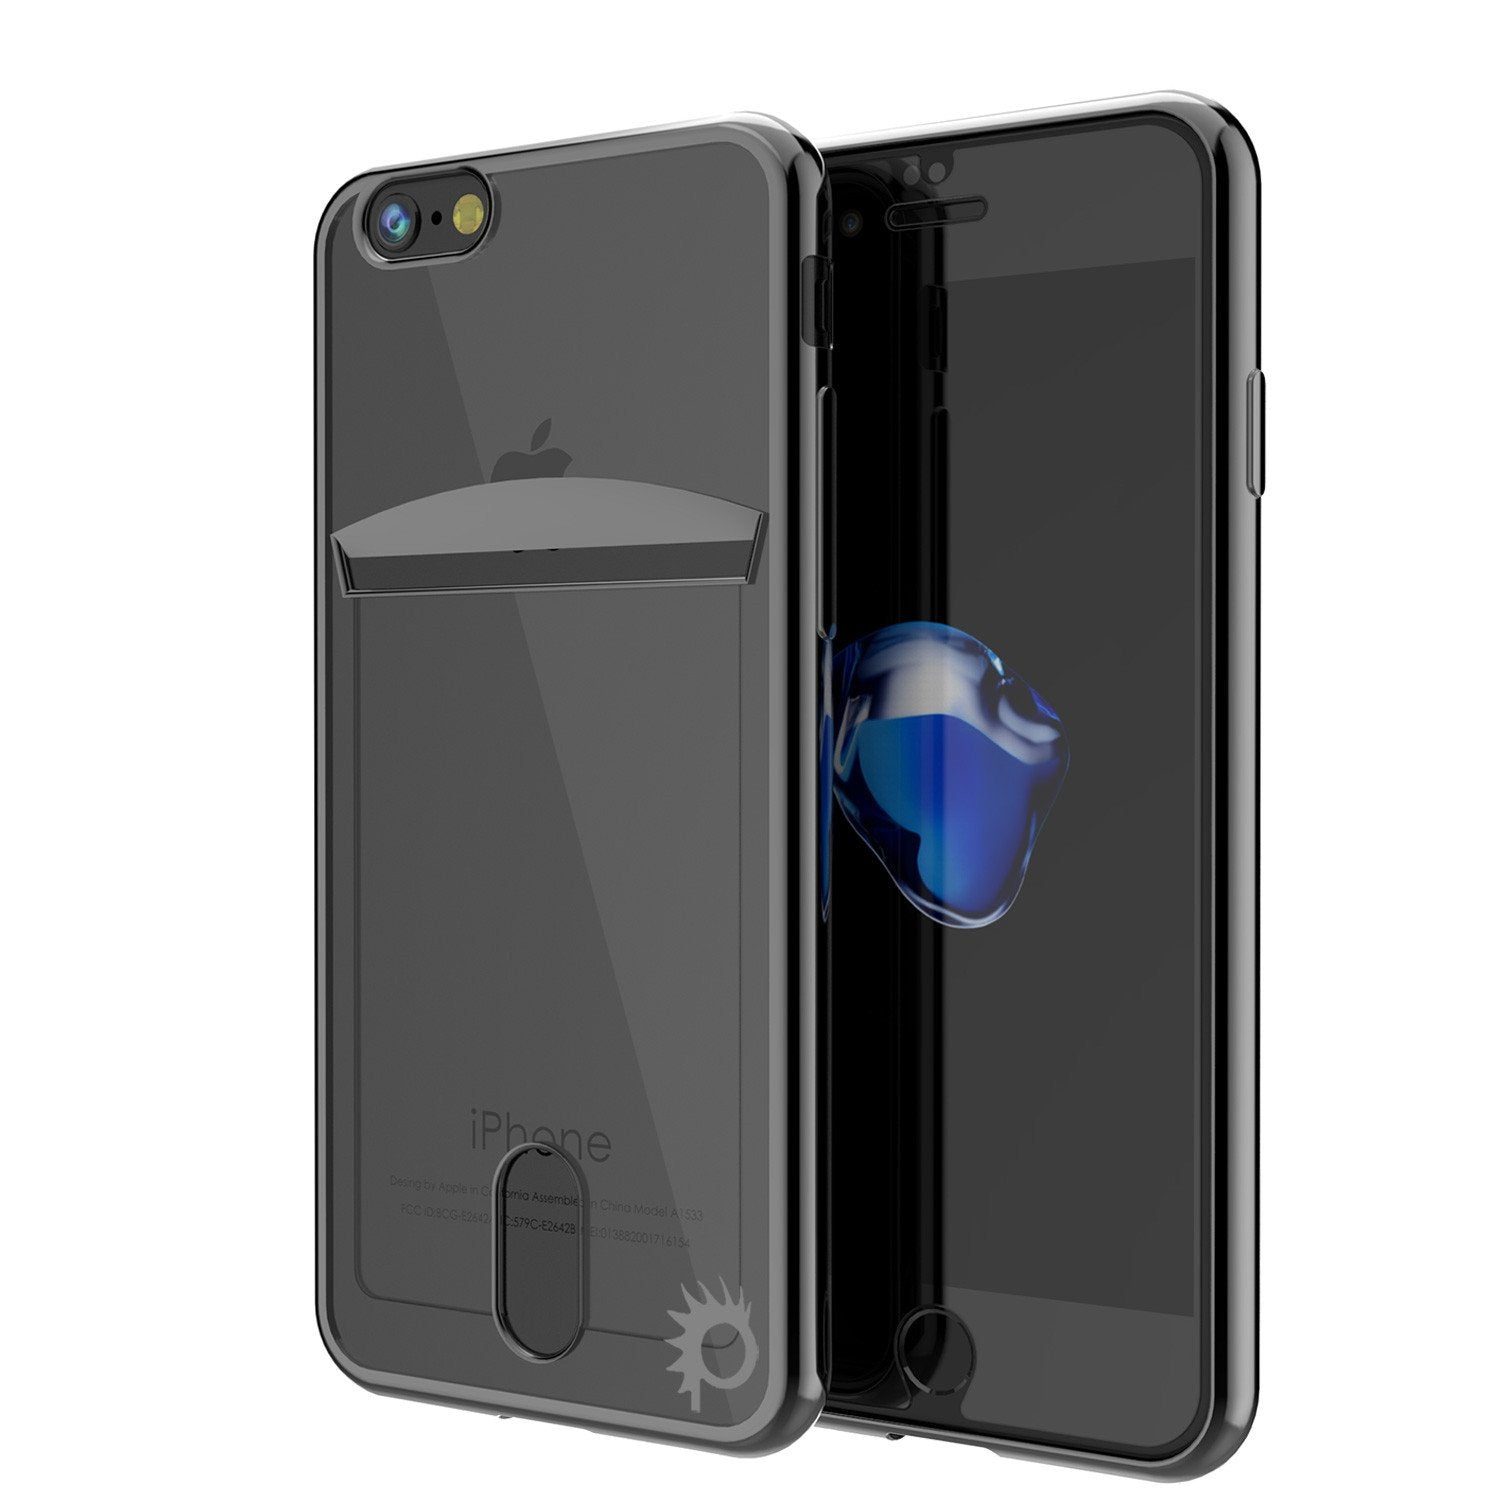 iPhone 7+ Plus Case, PUNKCASE® LUCID Black Series | Card Slot | SHIELD Screen Protector | Ultra fit - PunkCase NZ